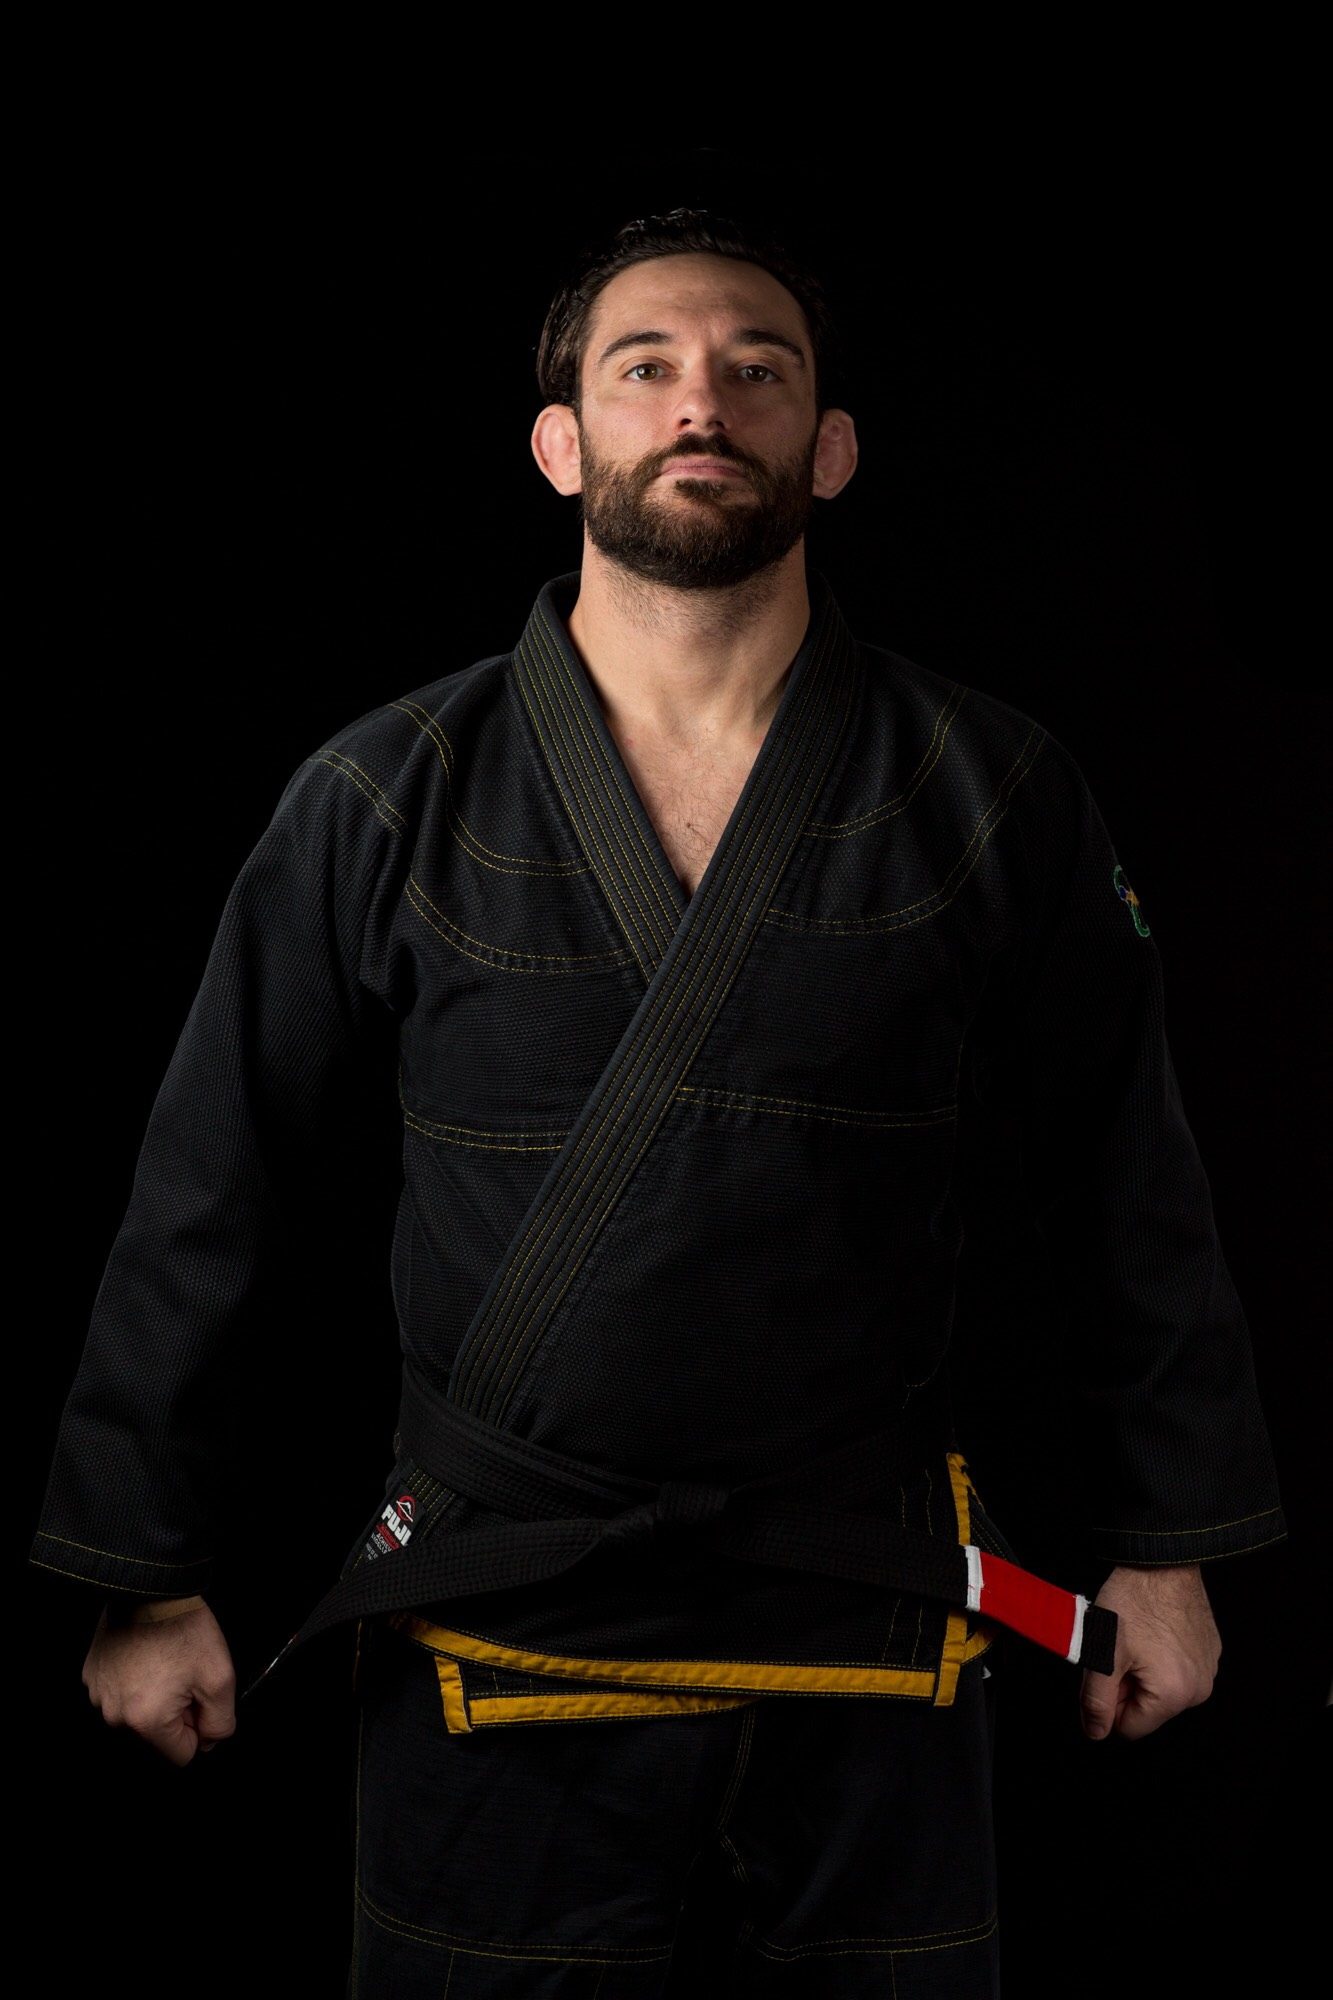 Marc Adami - Marc started training in 2007 under Renzo Gracie black belt Gene Dunn, white-purple; trained under Marcelo Garcia purple-brown; received his black belt under Fabio Clemente & Leo Vieira and now trains under Fabio Clemente with team Checkmat NYC. Titles:- Ranked number 1 master brown belt in 2017- Pan Am champion- 3x Pan Am No Gi champion- Pan Am bronze medalist absolute- 4 x Asian Open champion - 2x weight 2x absolute- European No Gi champion- European bronze medalist- 3x New York Open champion, 2x silver medalist, bronze medalist- BJJ Pro champion- Boston Open champion- NAGA Expert champion- Masters worlds silver medalist- Rome Open silver medalist- Toronto Open bronze medalist